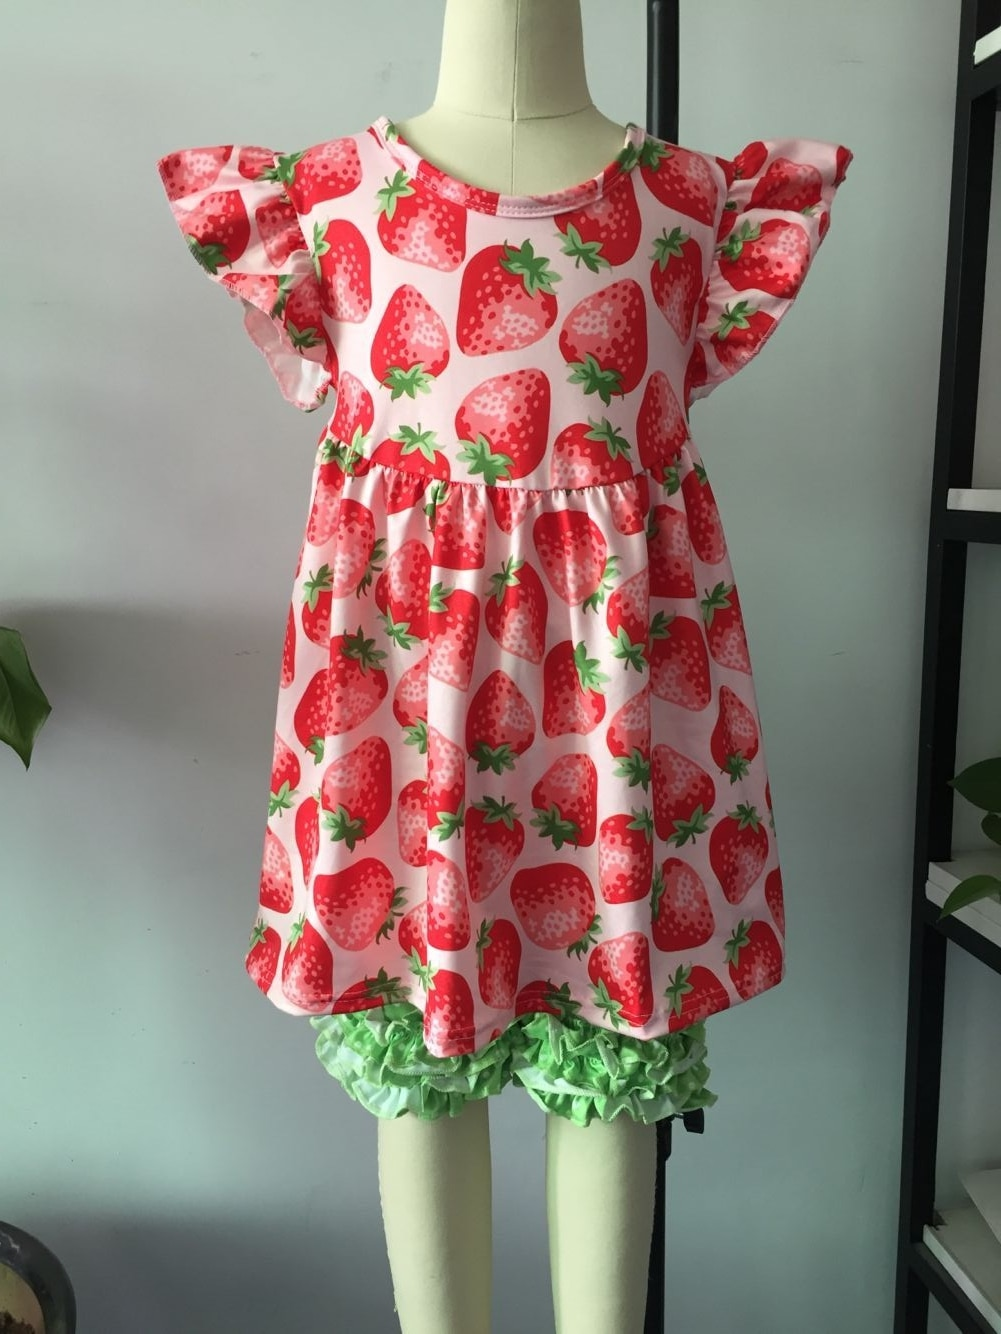 Baby girls' clothing sets with floral easter applique kids wear outfits